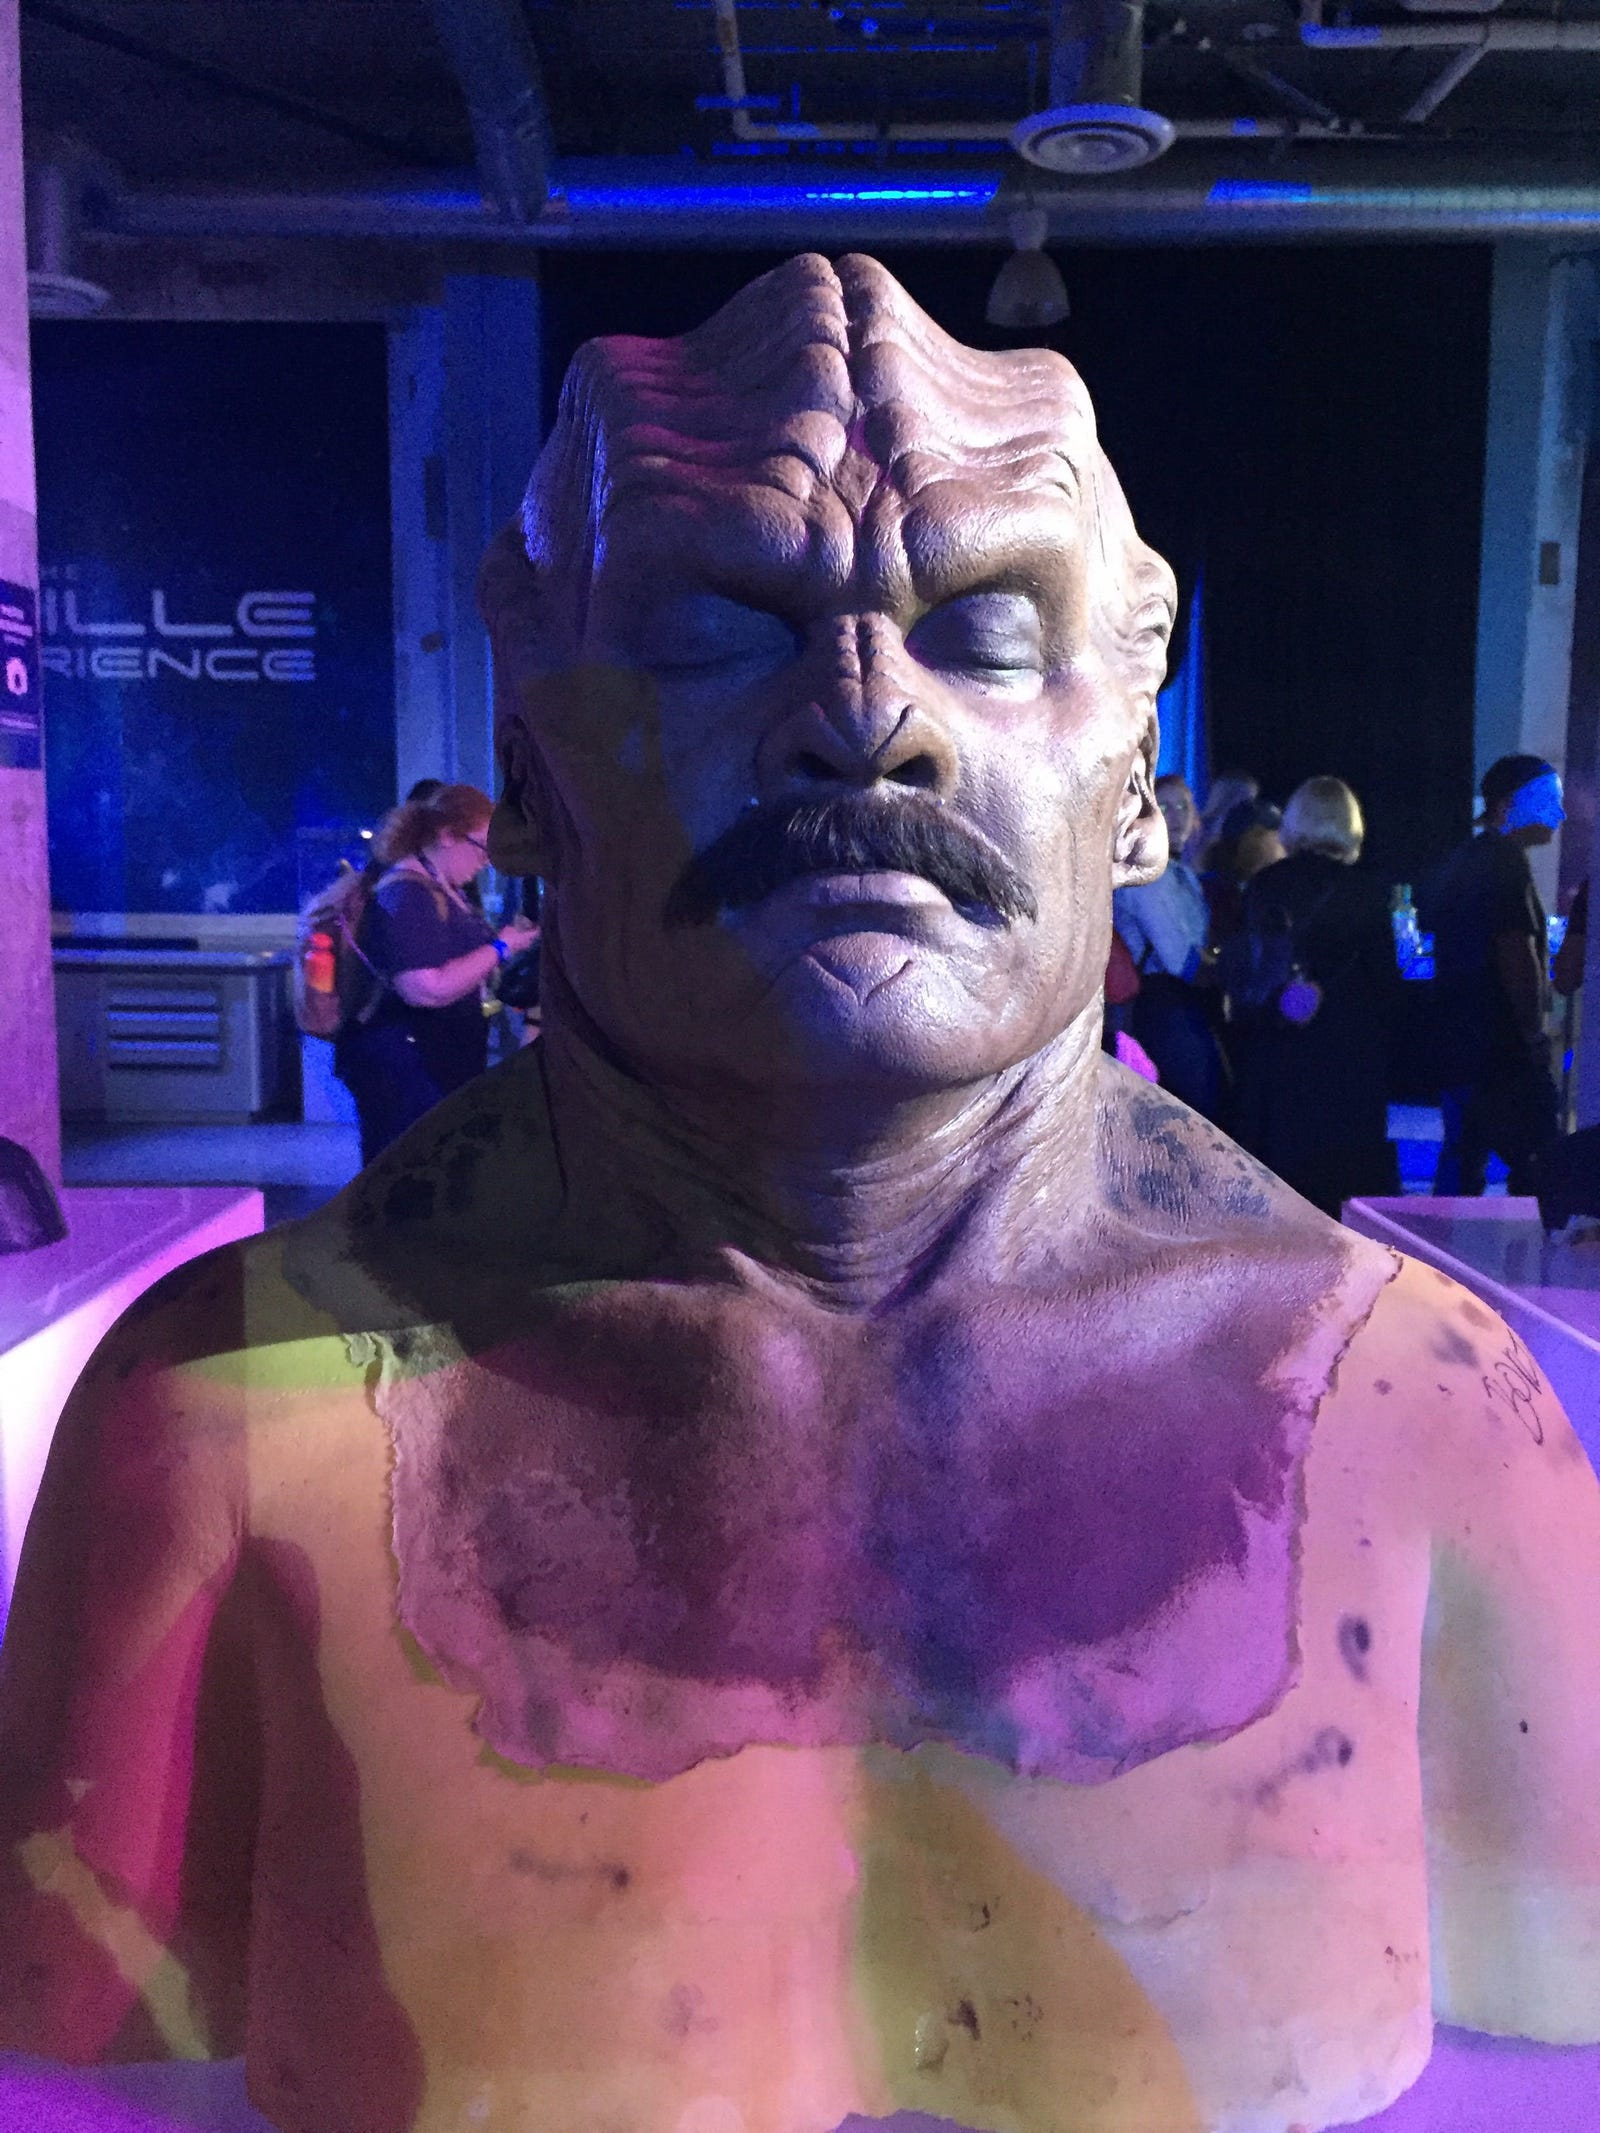 1) Behold, the Bortus make-up. More specifically, the Bortus make-up featuring that 'stache he grew for one glorious episode.